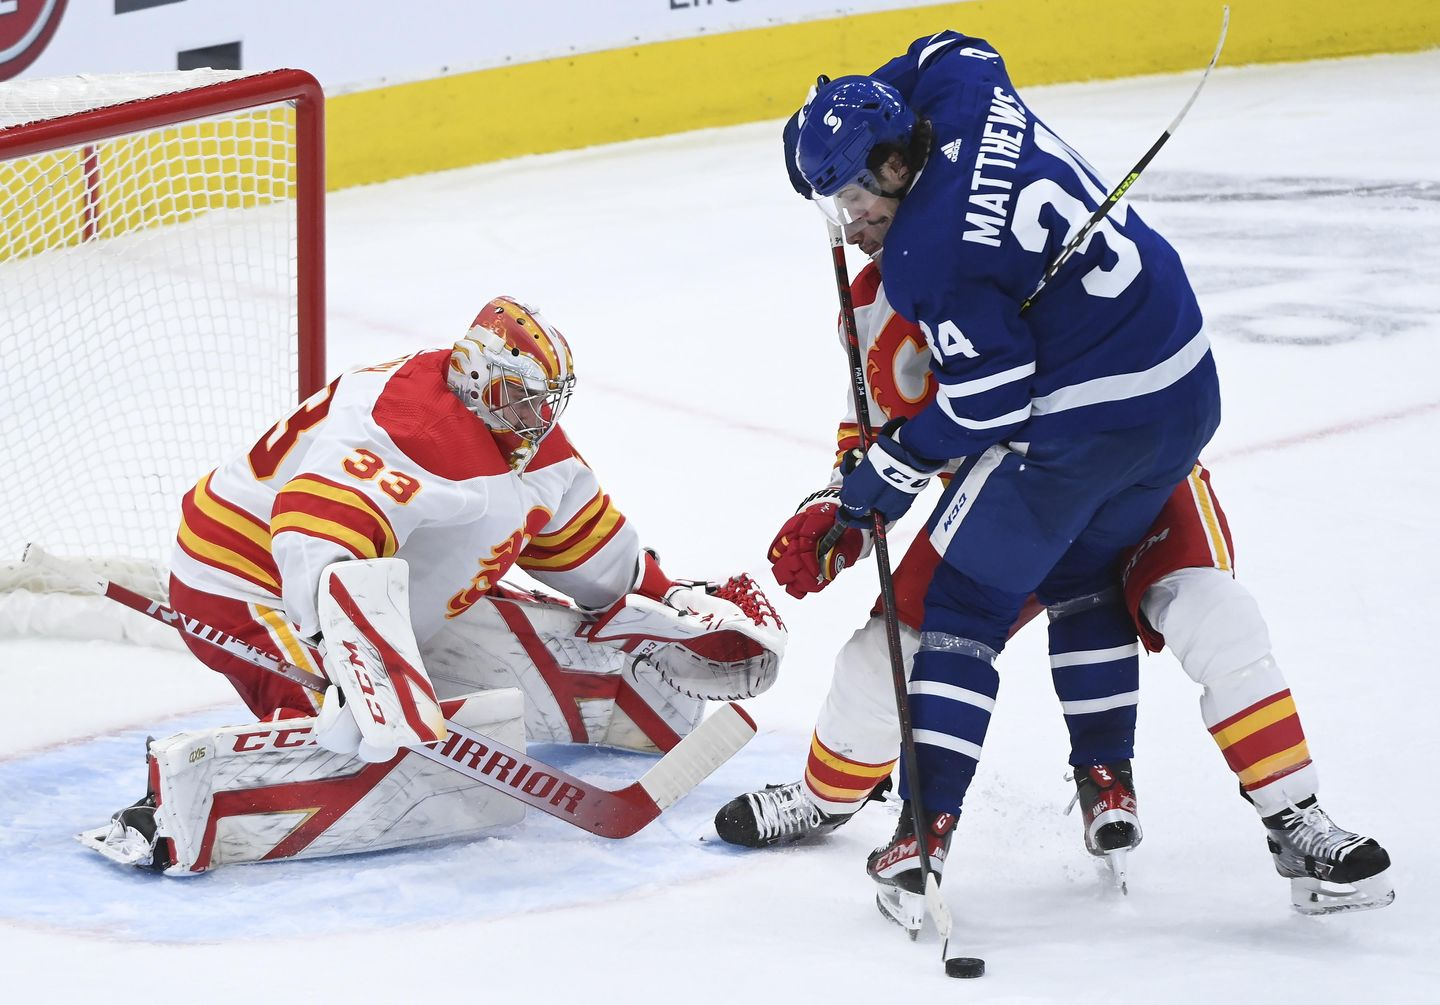 Rittich notches SO, Flames top NHL-leading Maple Leafs 3-0